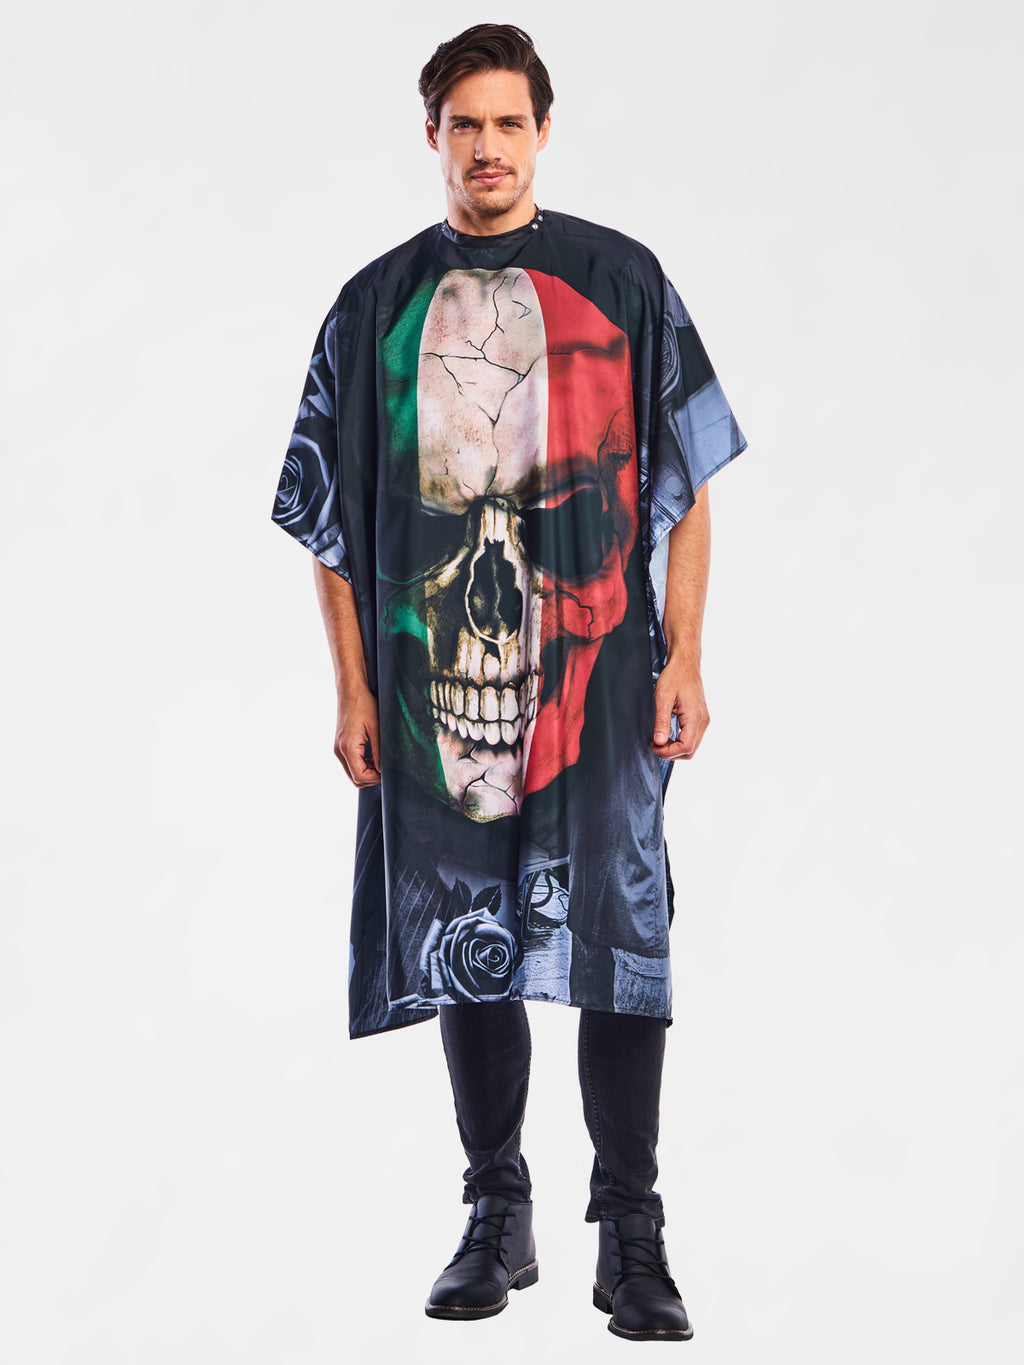 Mexicano Barber Cape | The International Cape Collection